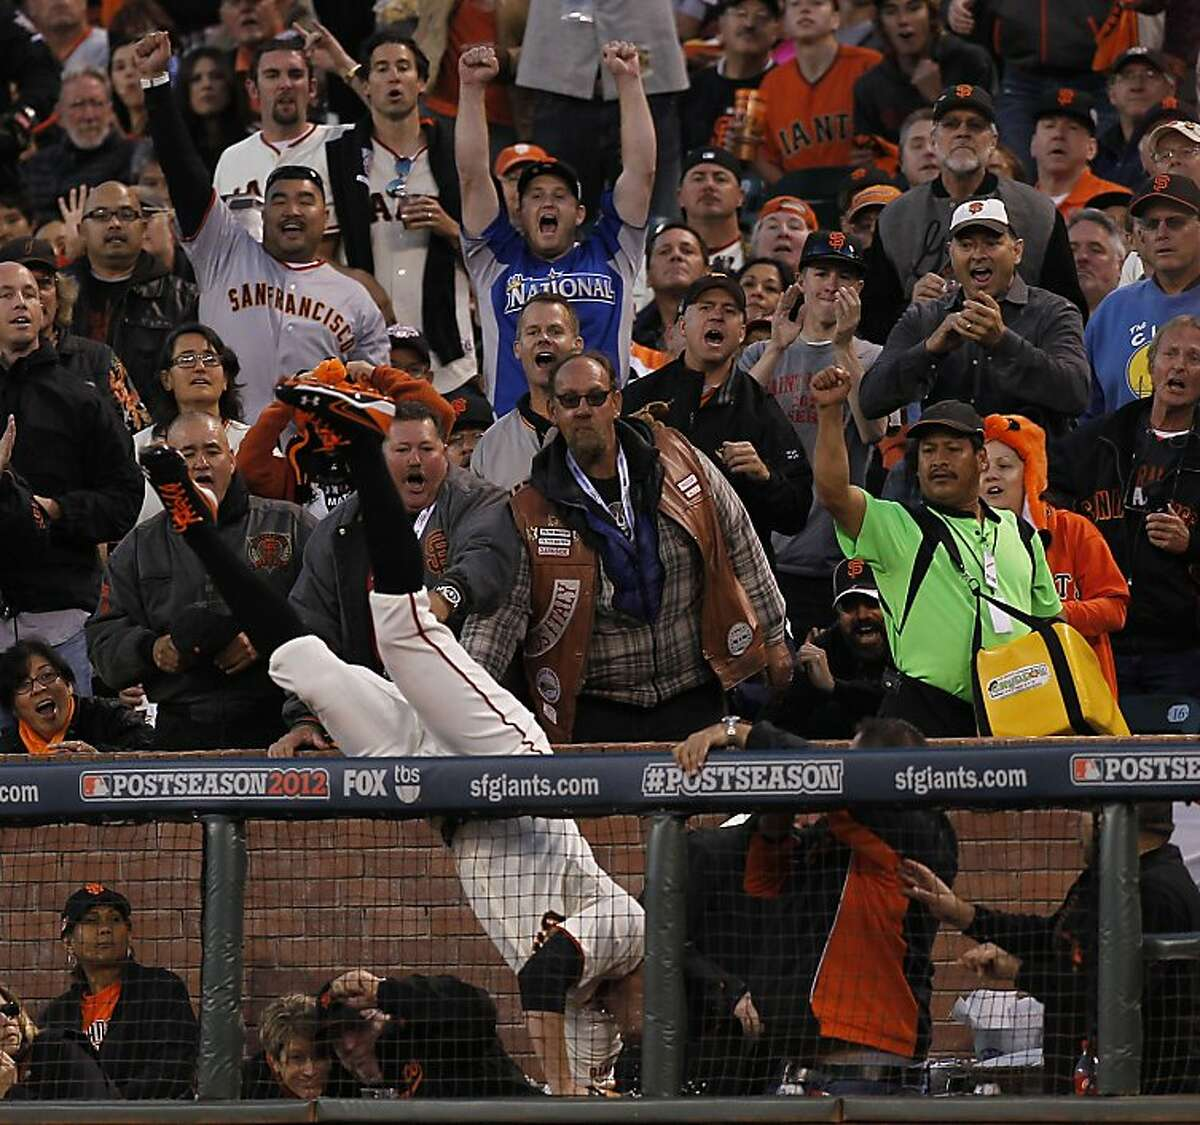 Giants first baseman Brandon Belt falls over the rail and into the crowd as he catches a pop fly ball hit by Reds' Zack Cozart, for an out in the first inningas the San Francisco GIants take on the Cincinnati Reds in game one of the National League Divisional Series at AT&T Park San Francisco, Calif., on Saturday October 6, 2012.